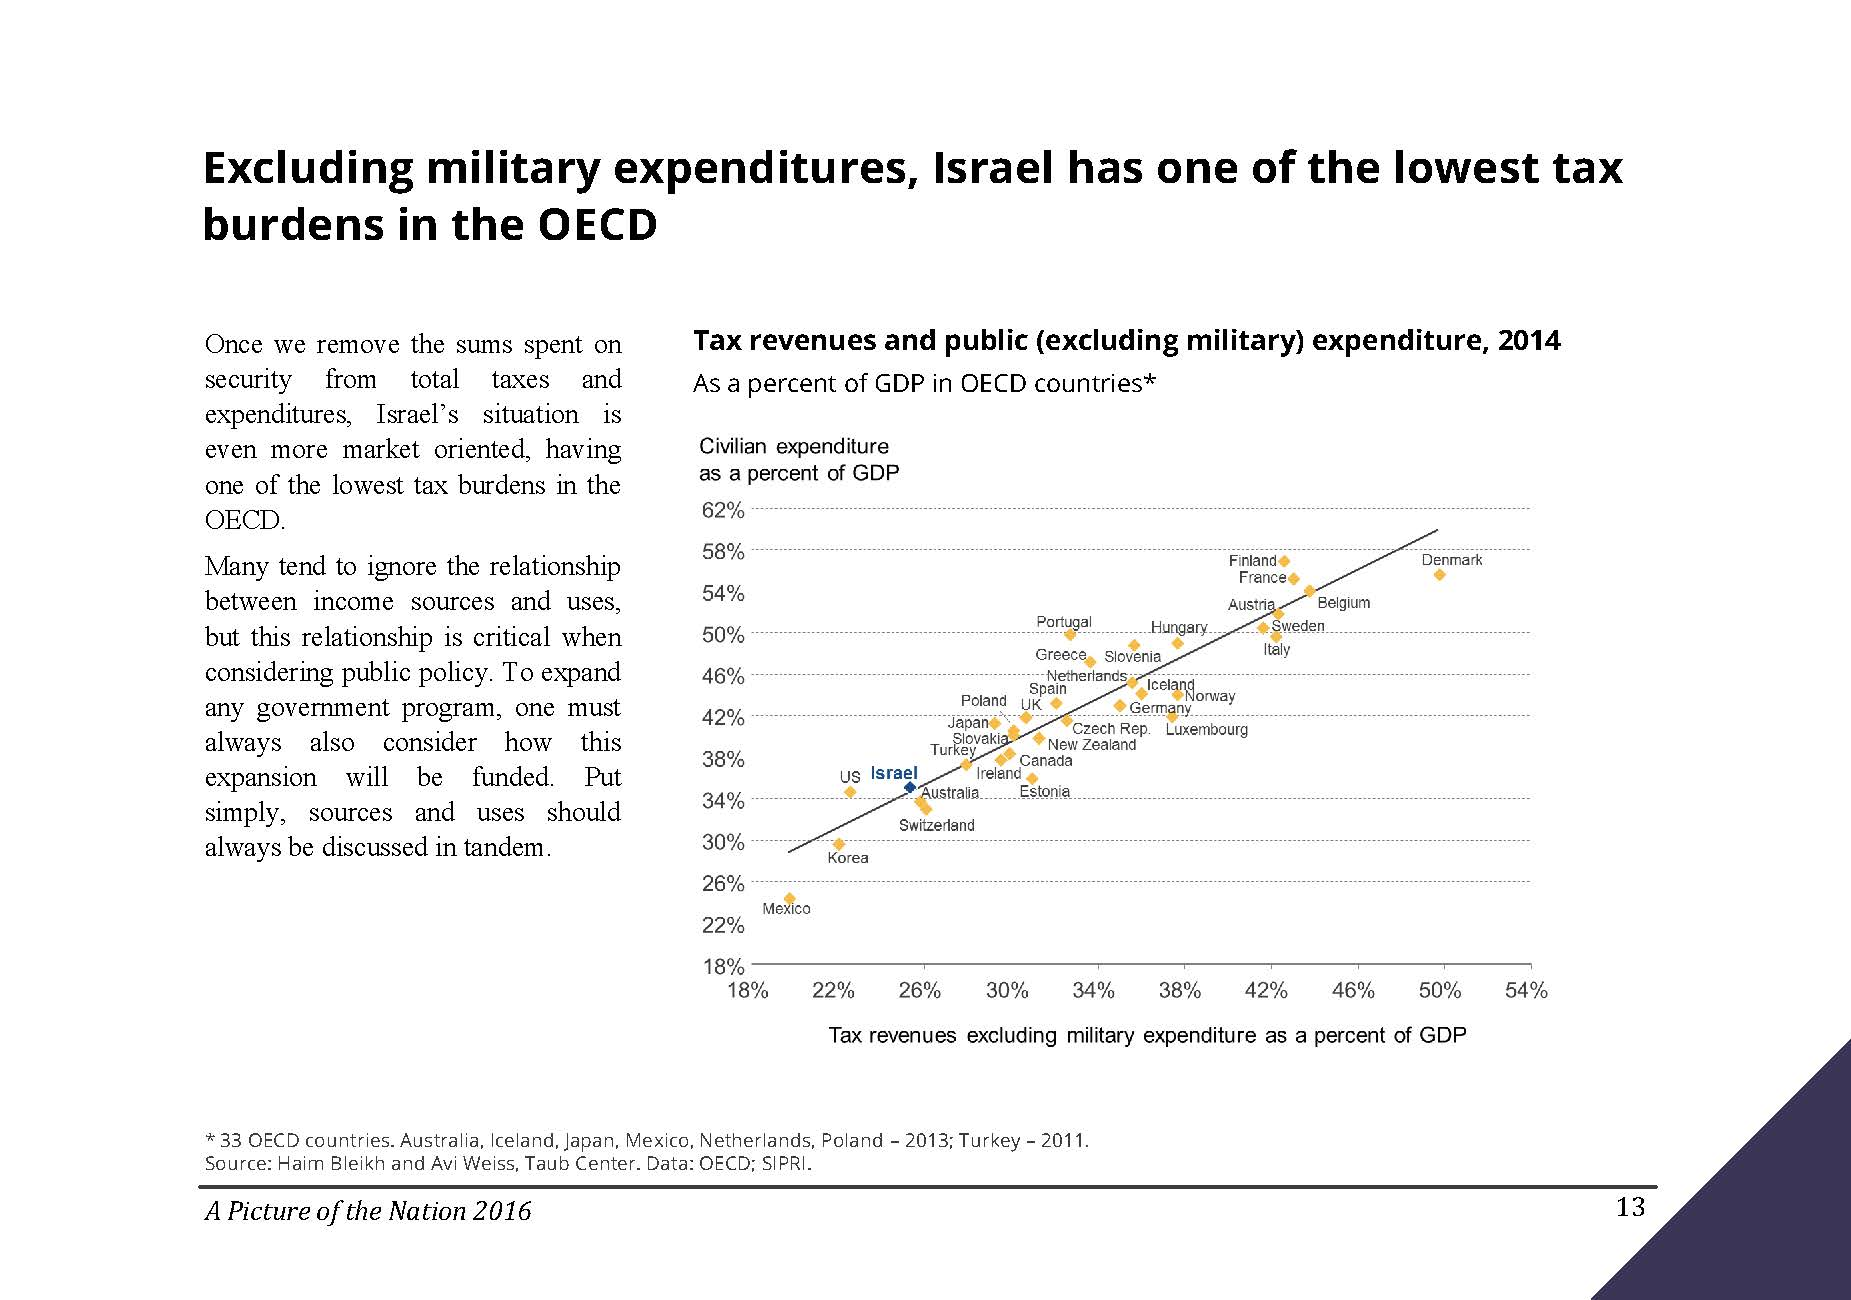 Excluding military expenditures, Israel has one of the lowest tax burdens in the OECD